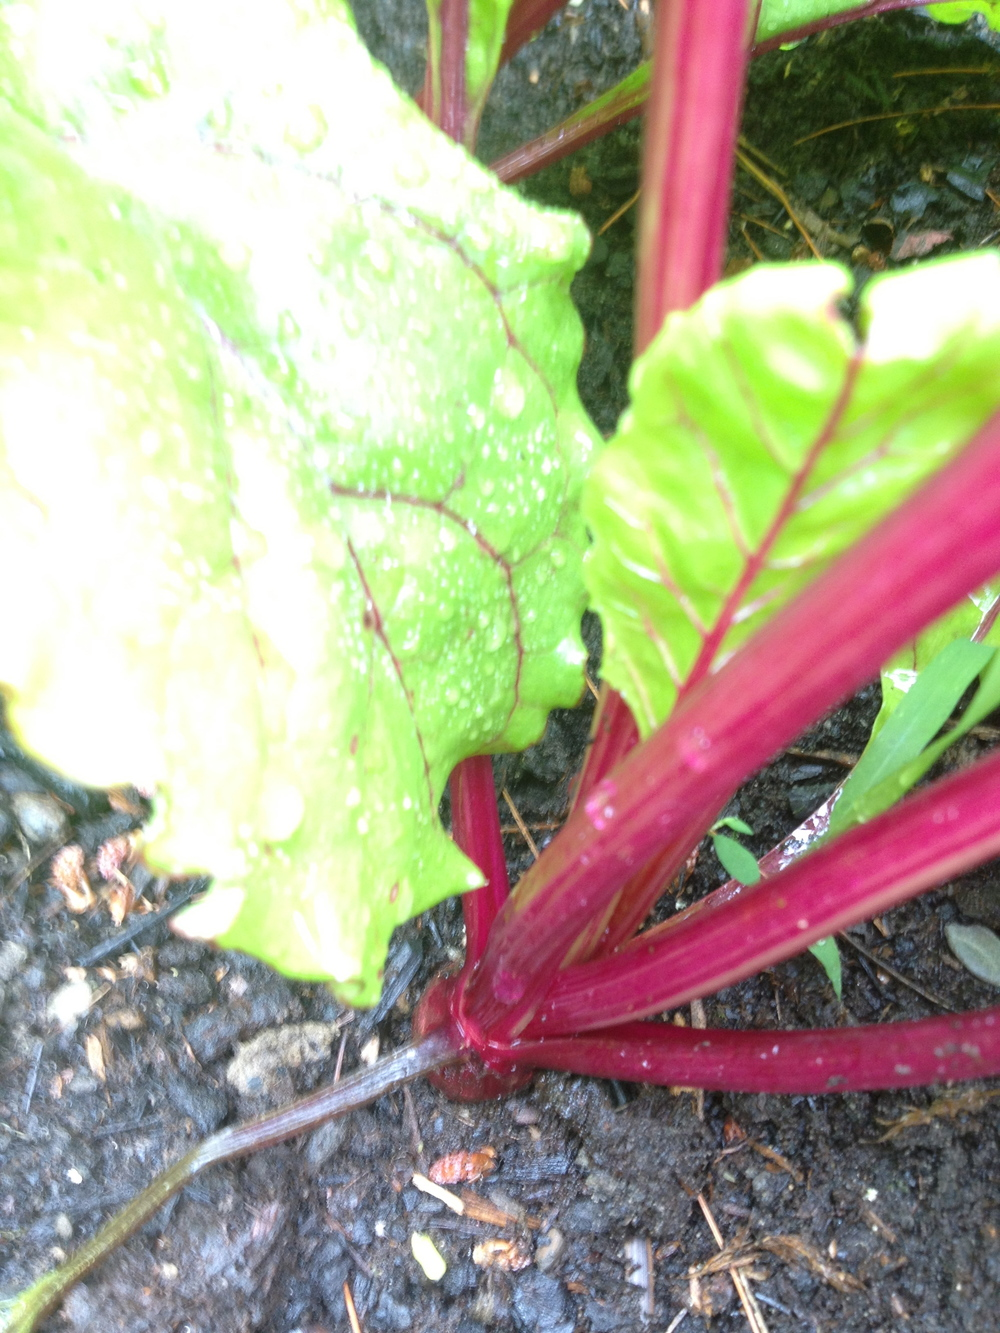 The beets are starting to come out!